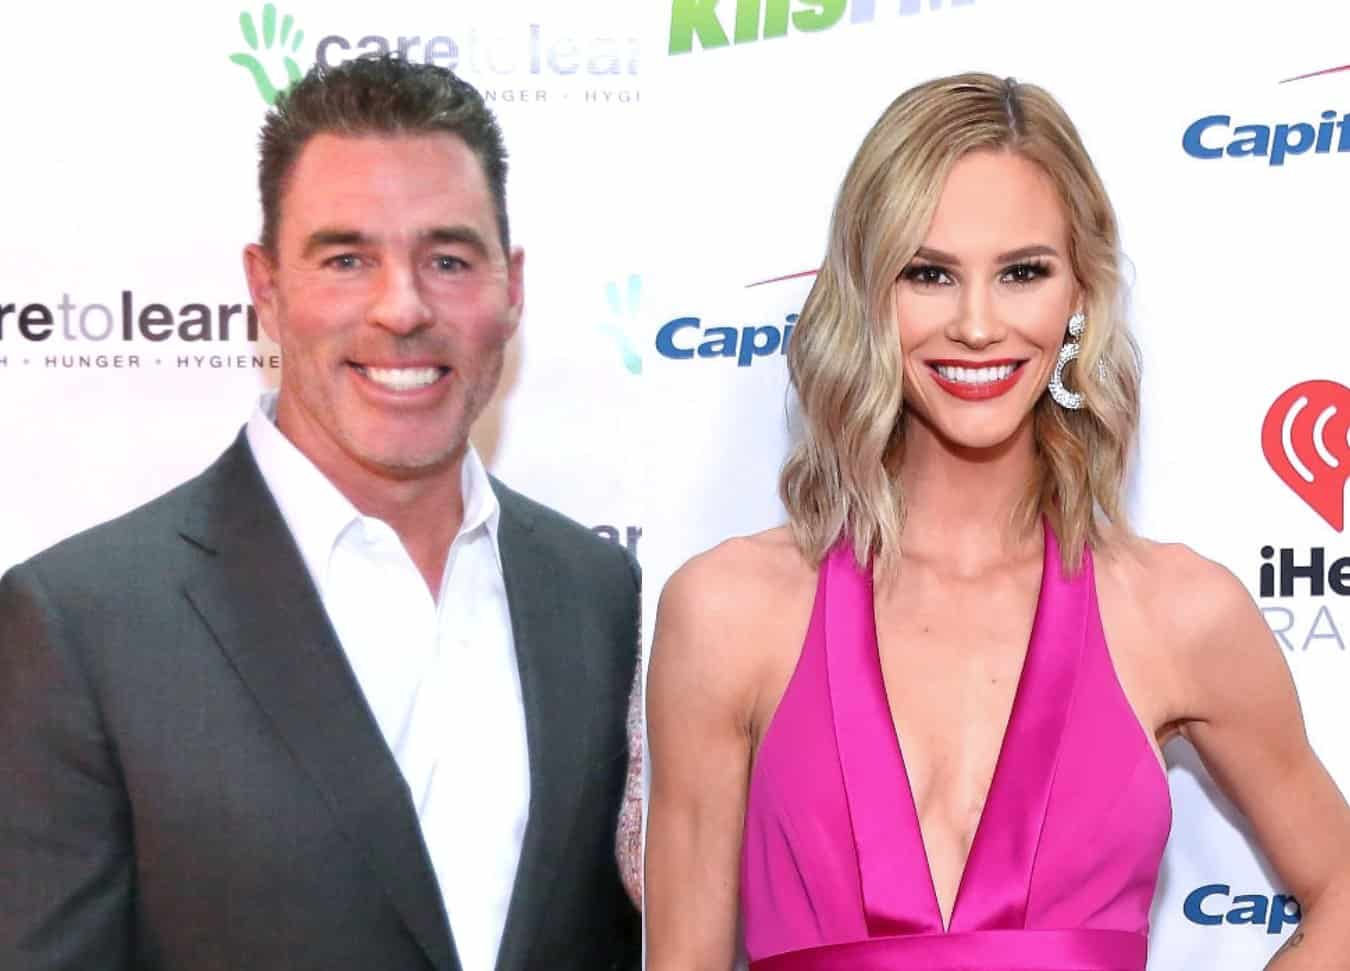 "REPORT: Jim Edmonds Wants Full Custody of His Kids With Meghan King, Find Out Why as the Ex RHOC Star Fires Back by Mentioning His Cheating and Implying Emotional ""Abuse"""